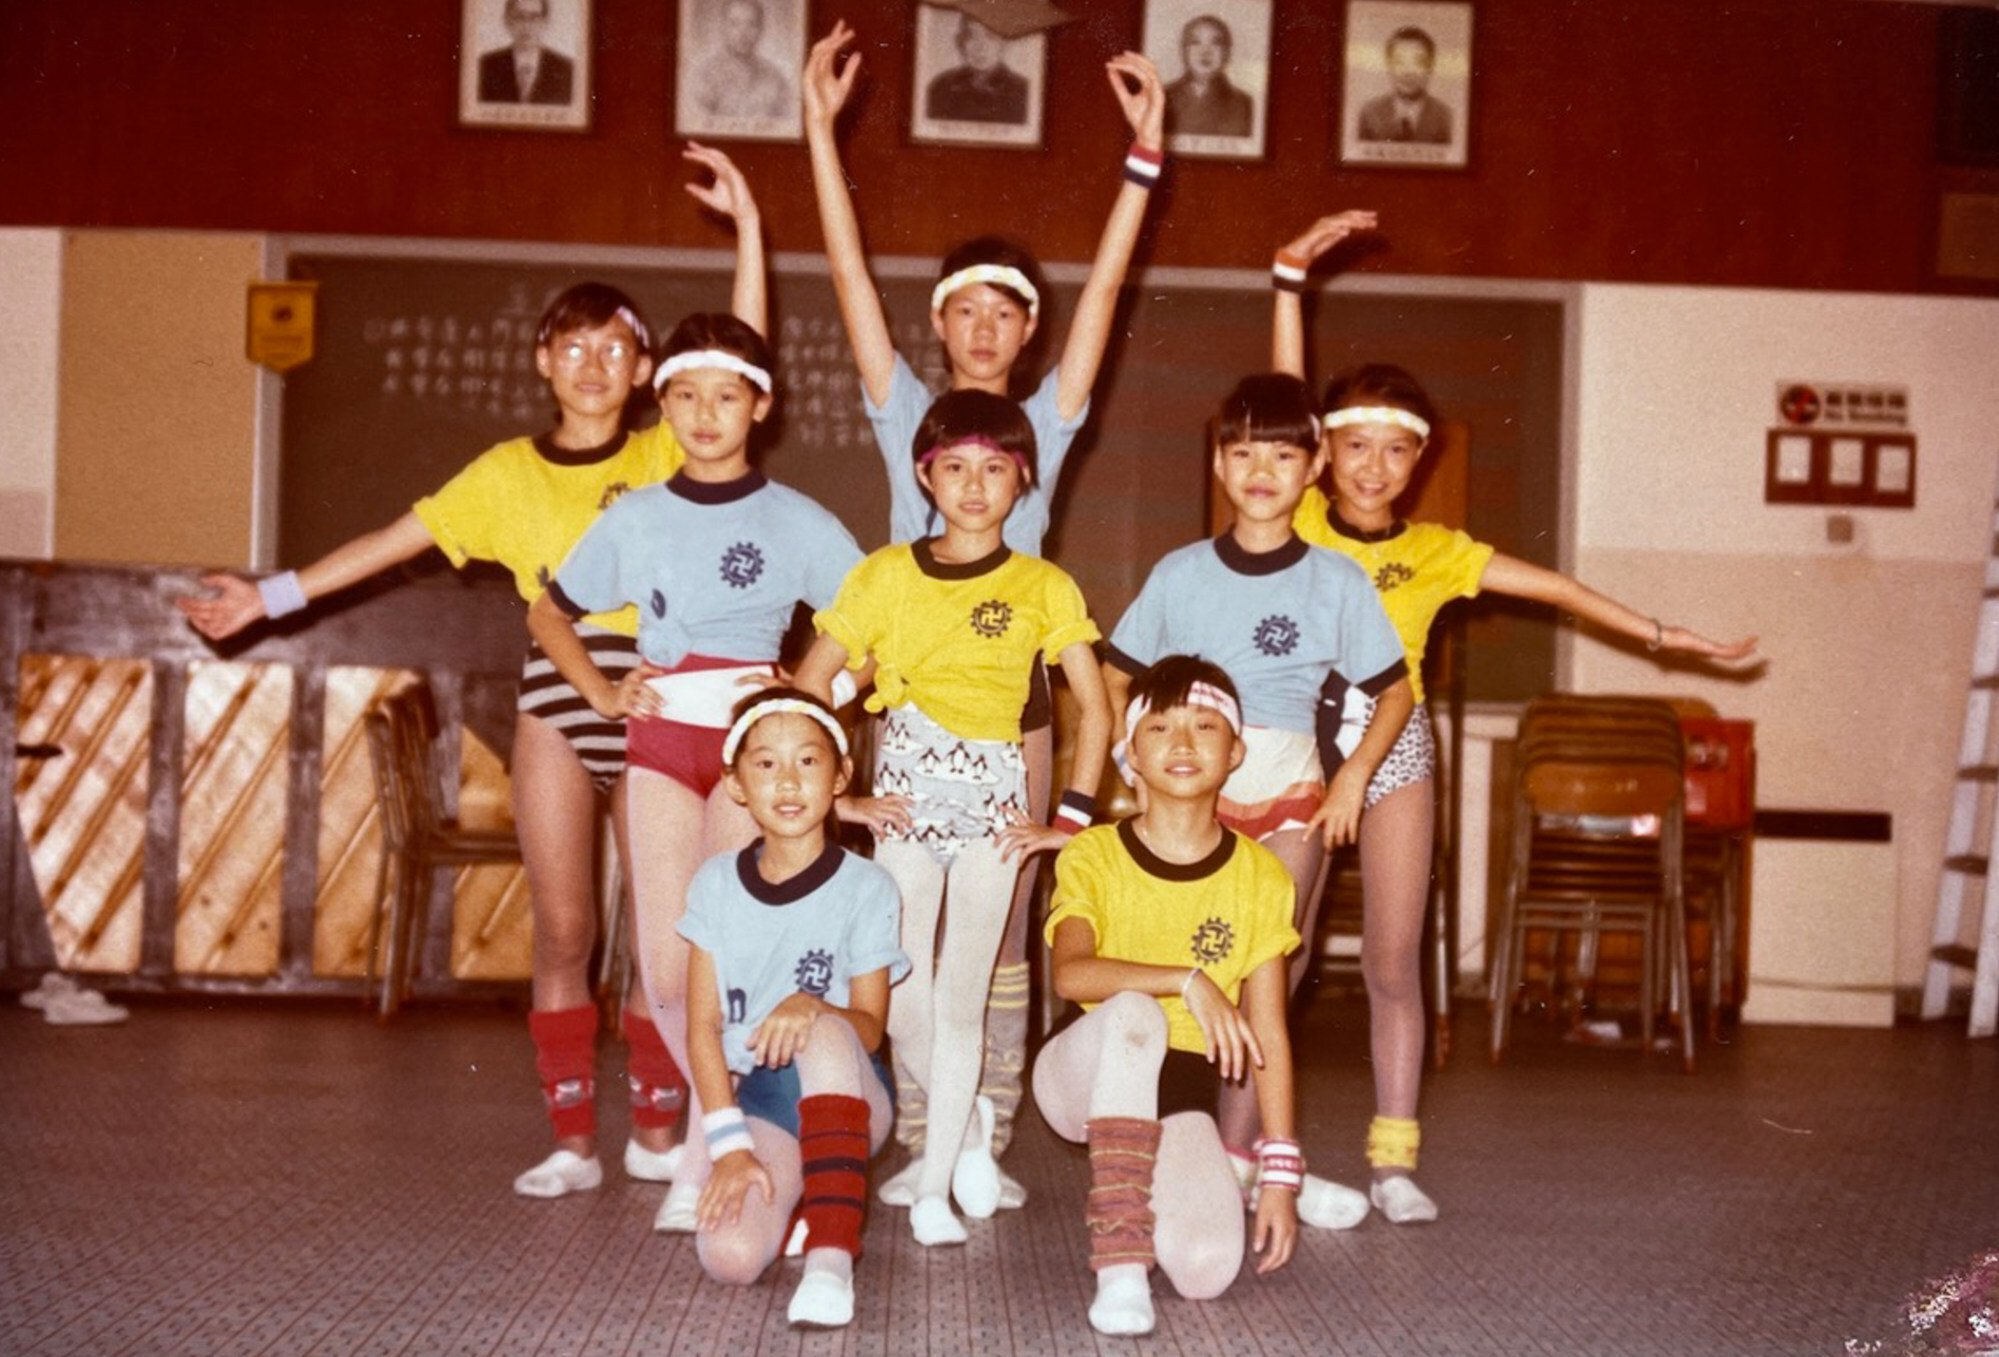 Lee (bottom right) with dancing friends before a show. Photo: courtesy of Utah Lee